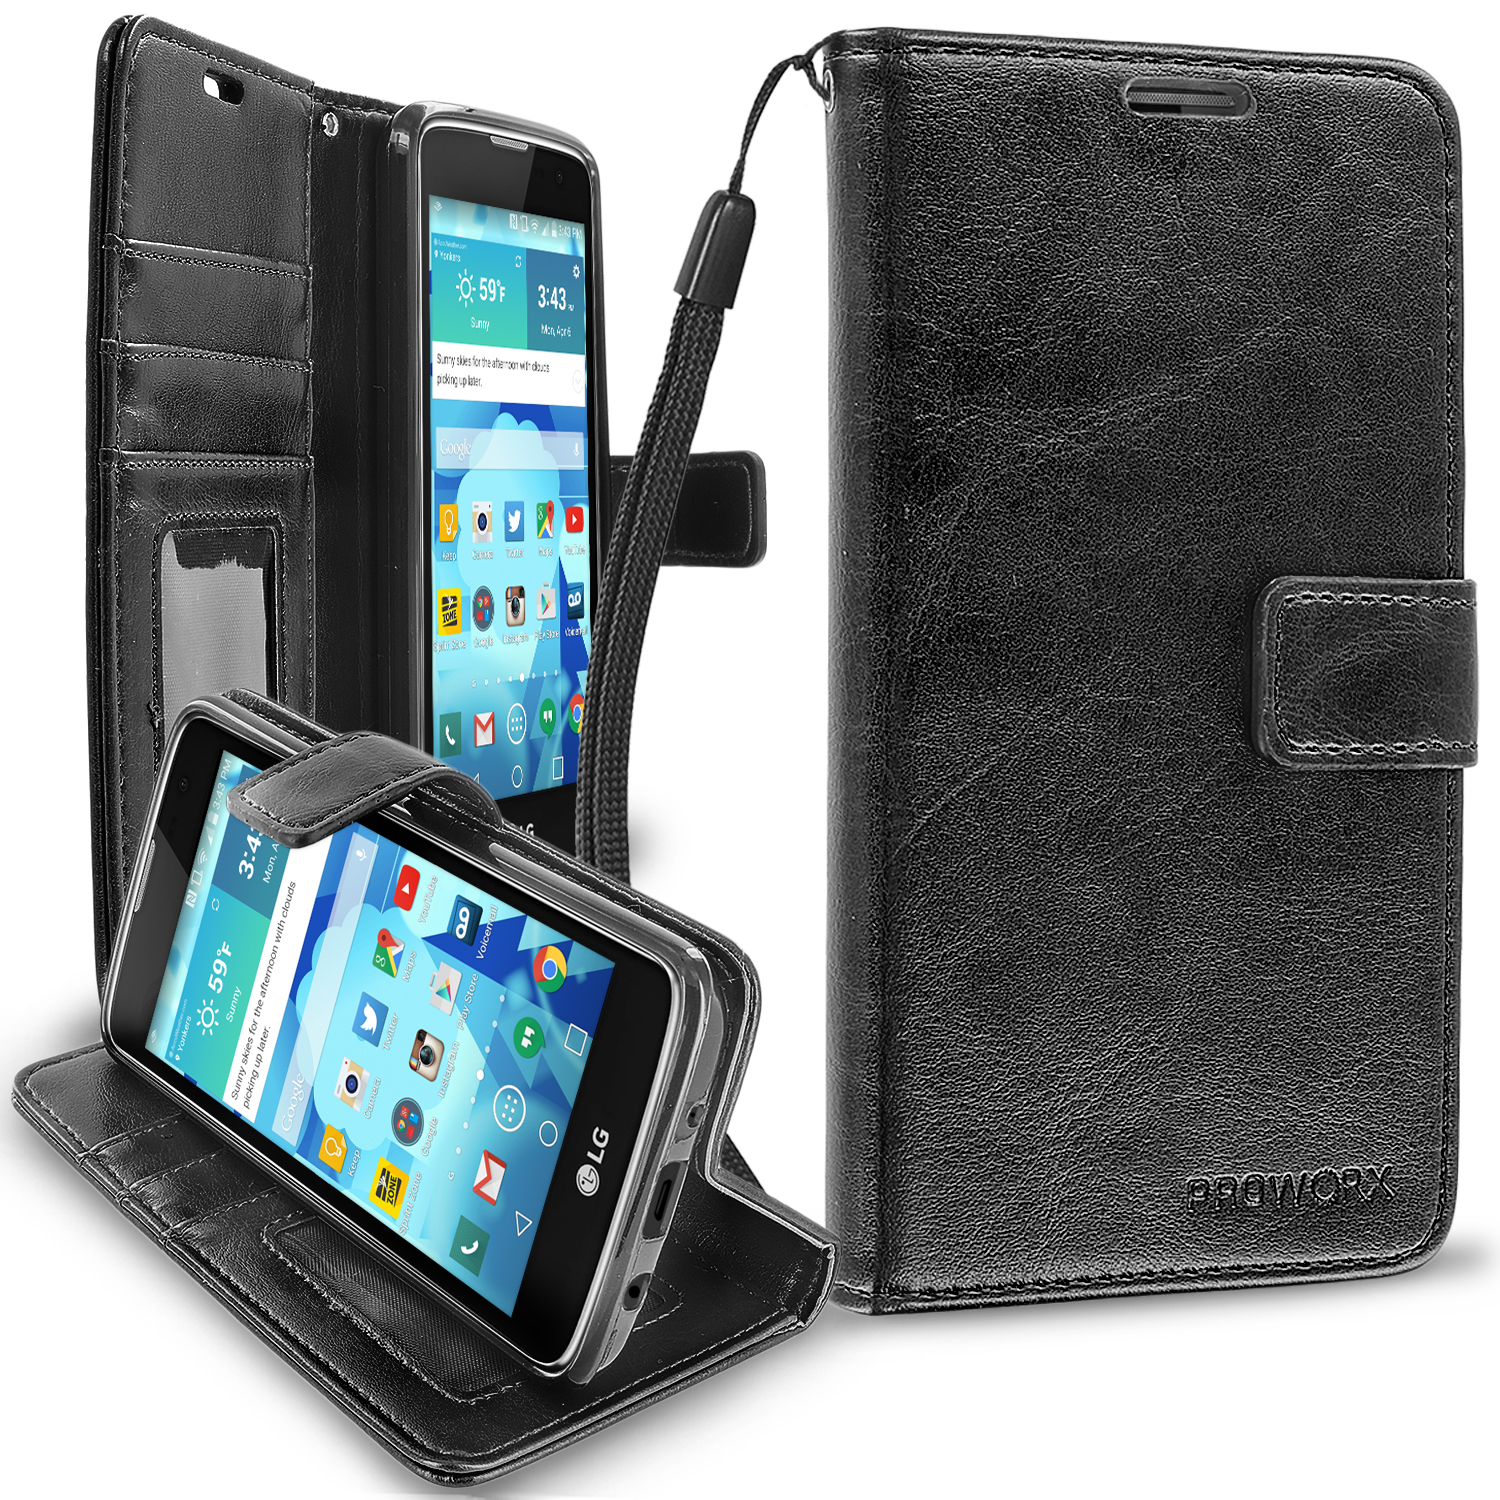 LG Tribute 5 K7 Phoenix 2 Escape 3 Treasure Black ProWorx Wallet Case Luxury PU Leather Case Cover With Card Slots & Stand